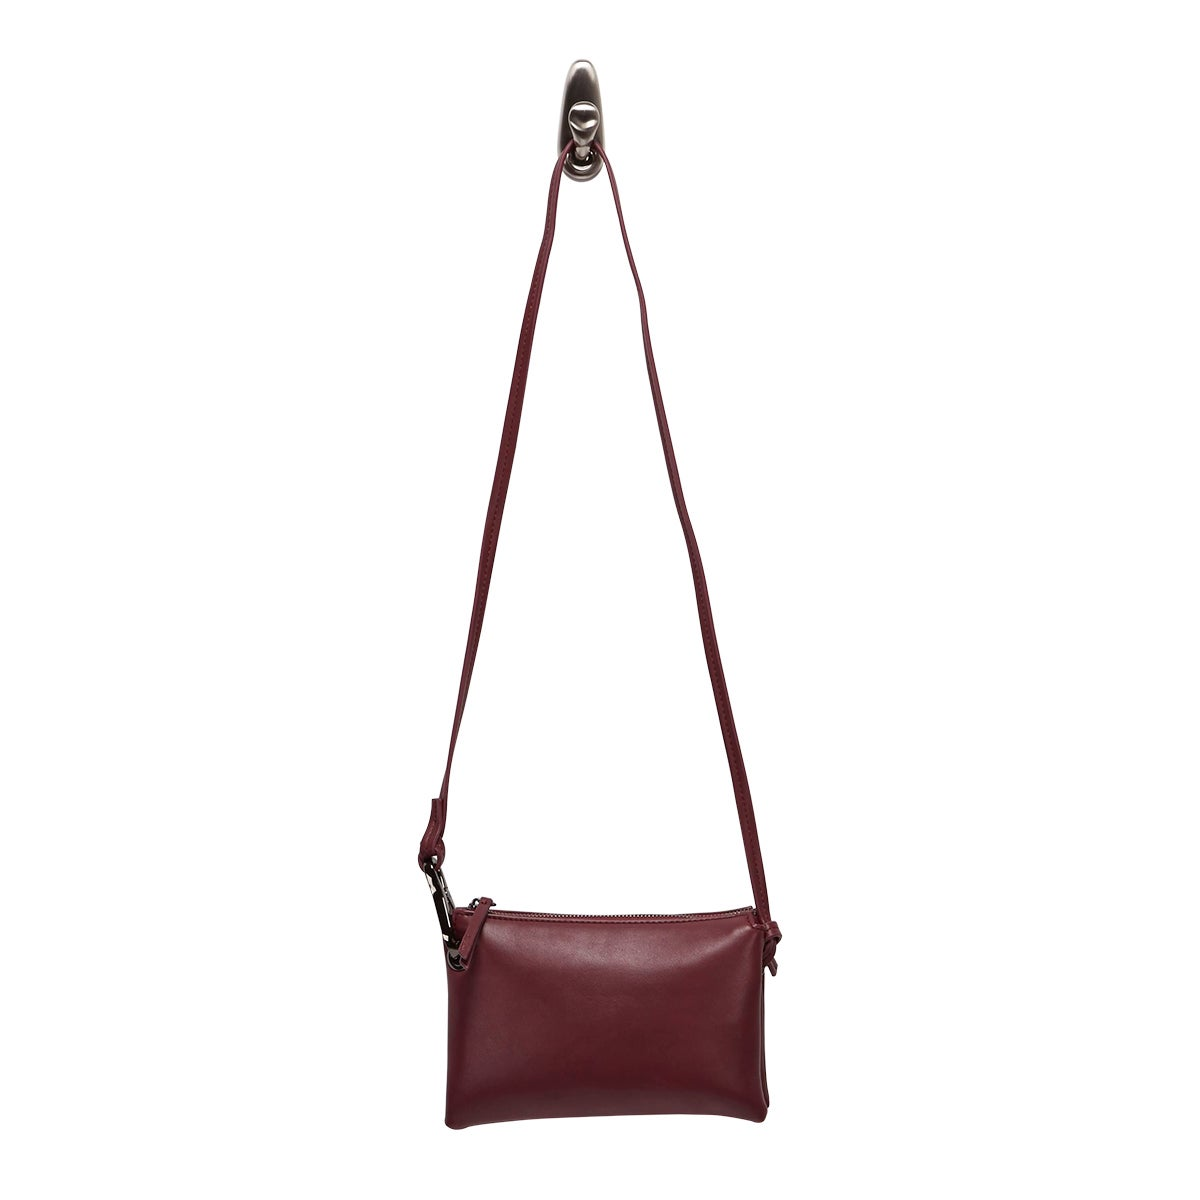 Lds wine mini cross body bag